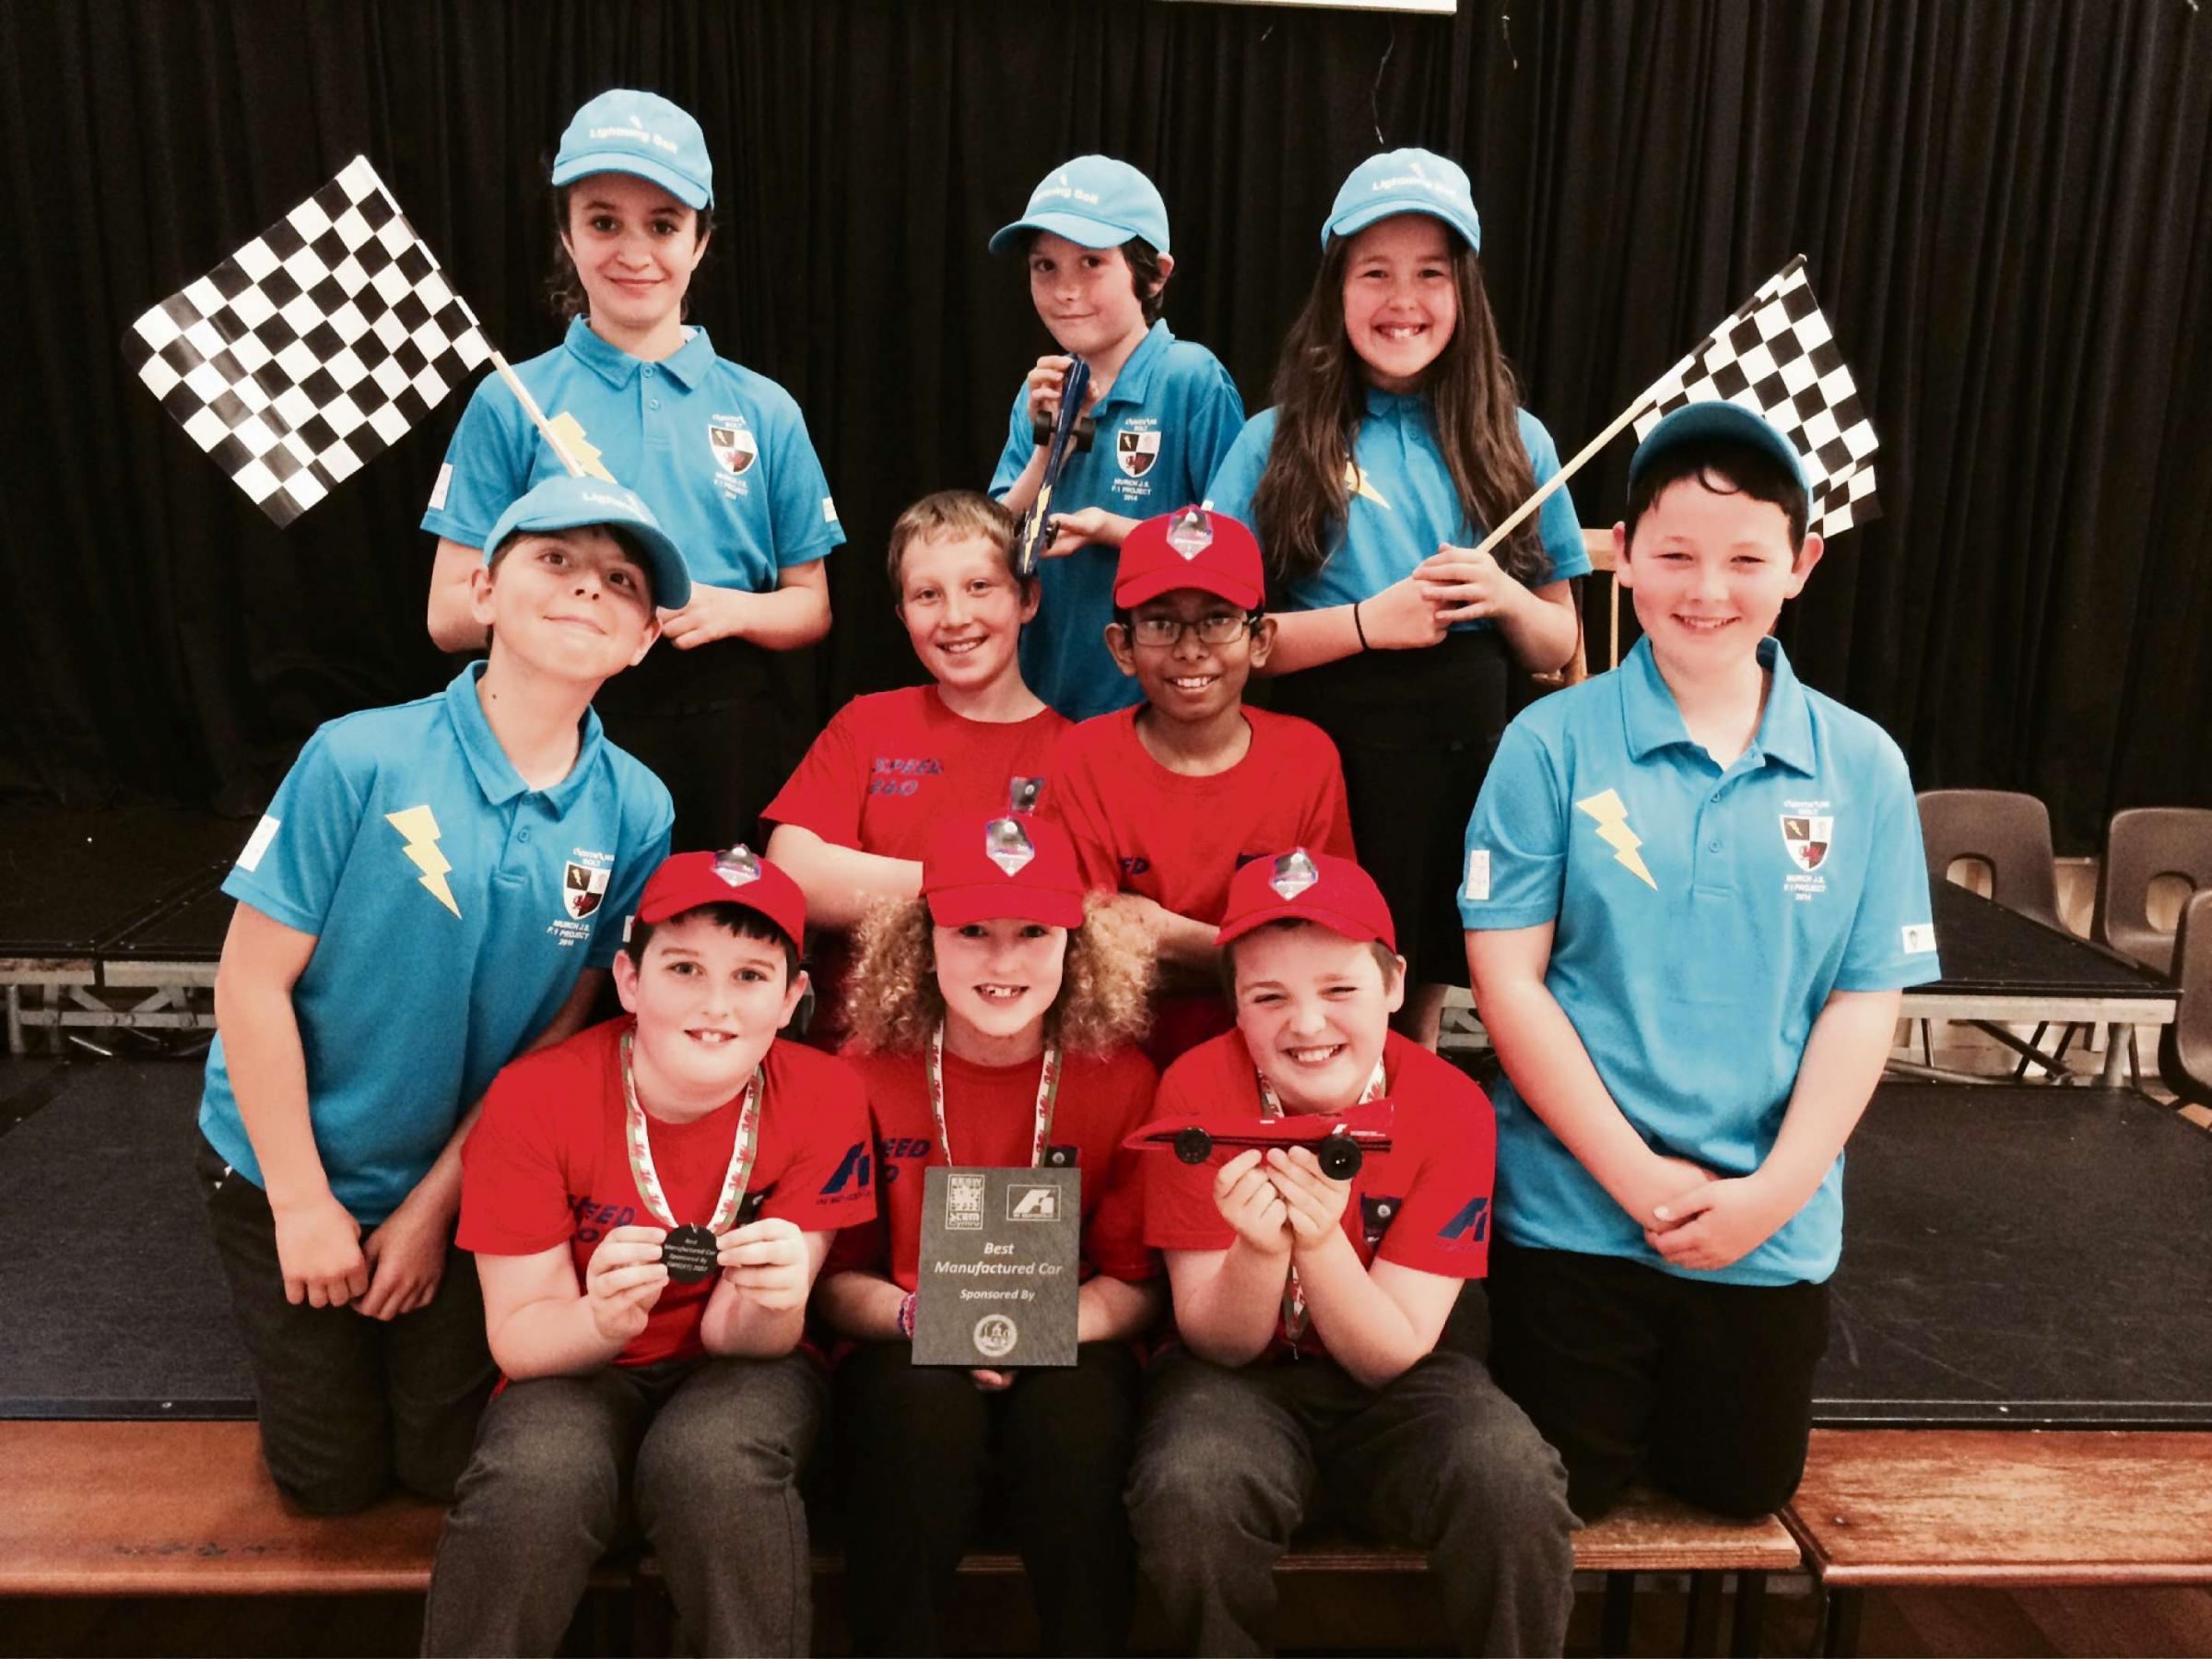 F1 CHAMPS: The 'Speed 360' and 'Lightening Bolt' teams from Murch Junior School after the competition